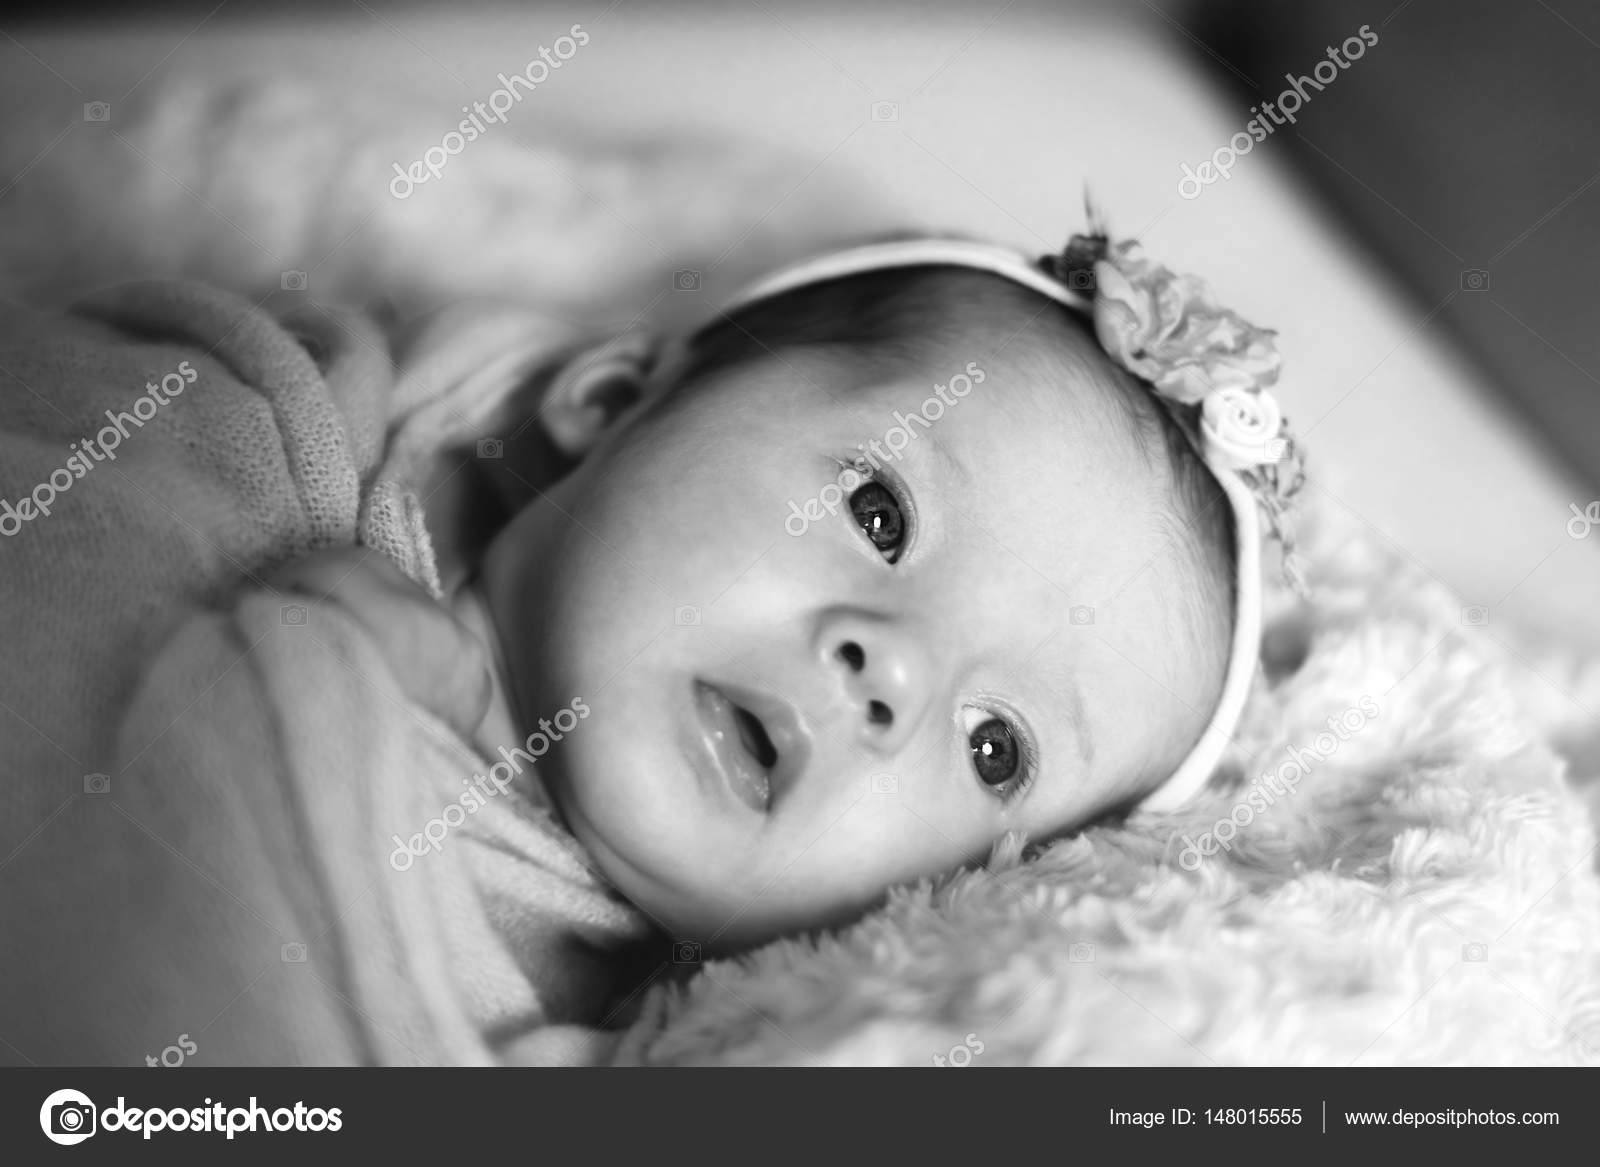 Cute newborn baby girl in the bed black and white photo by